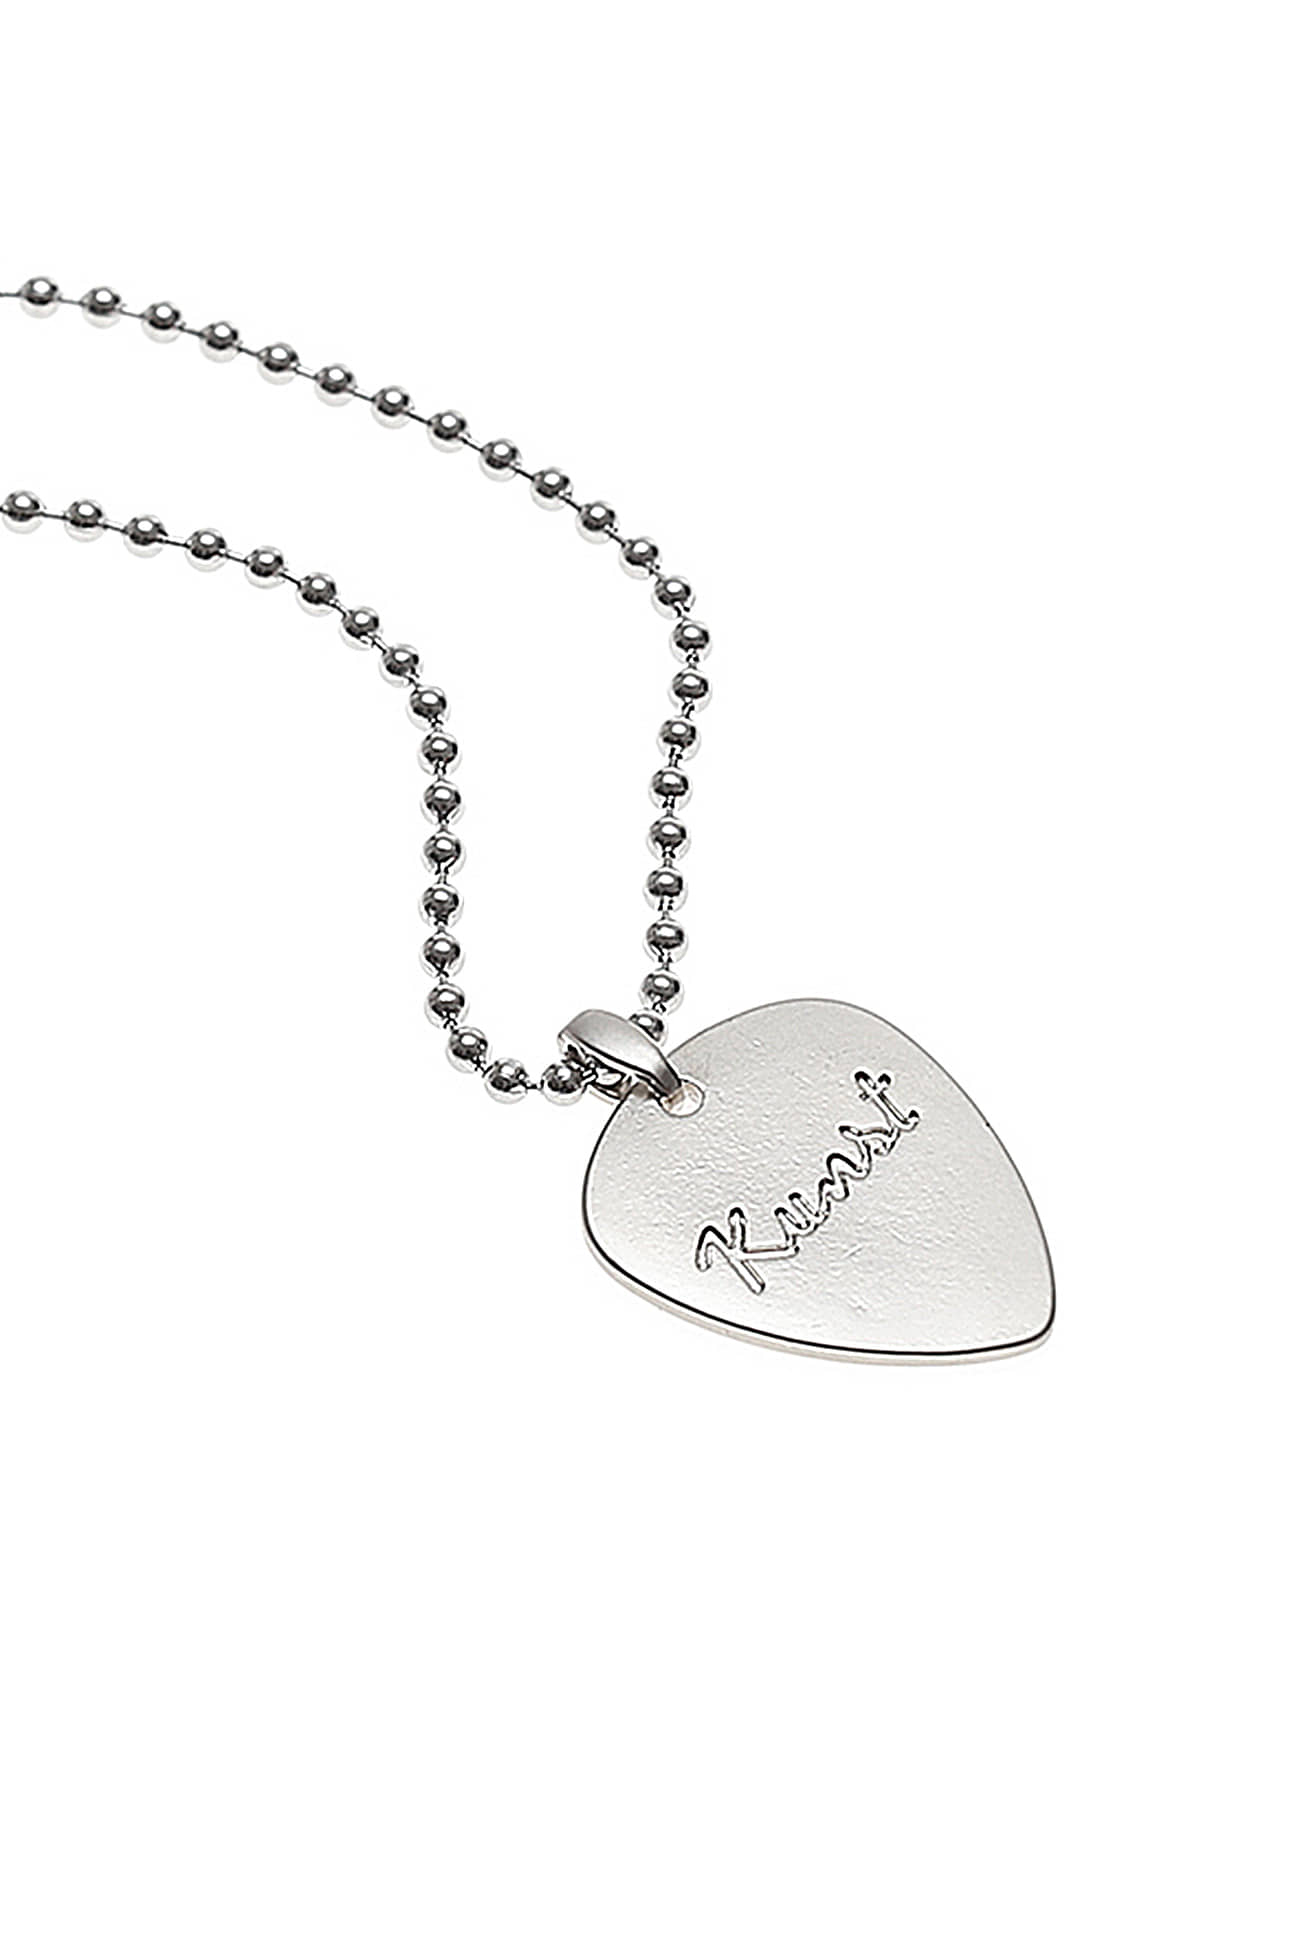 PICK NECKLACE[SILVER]